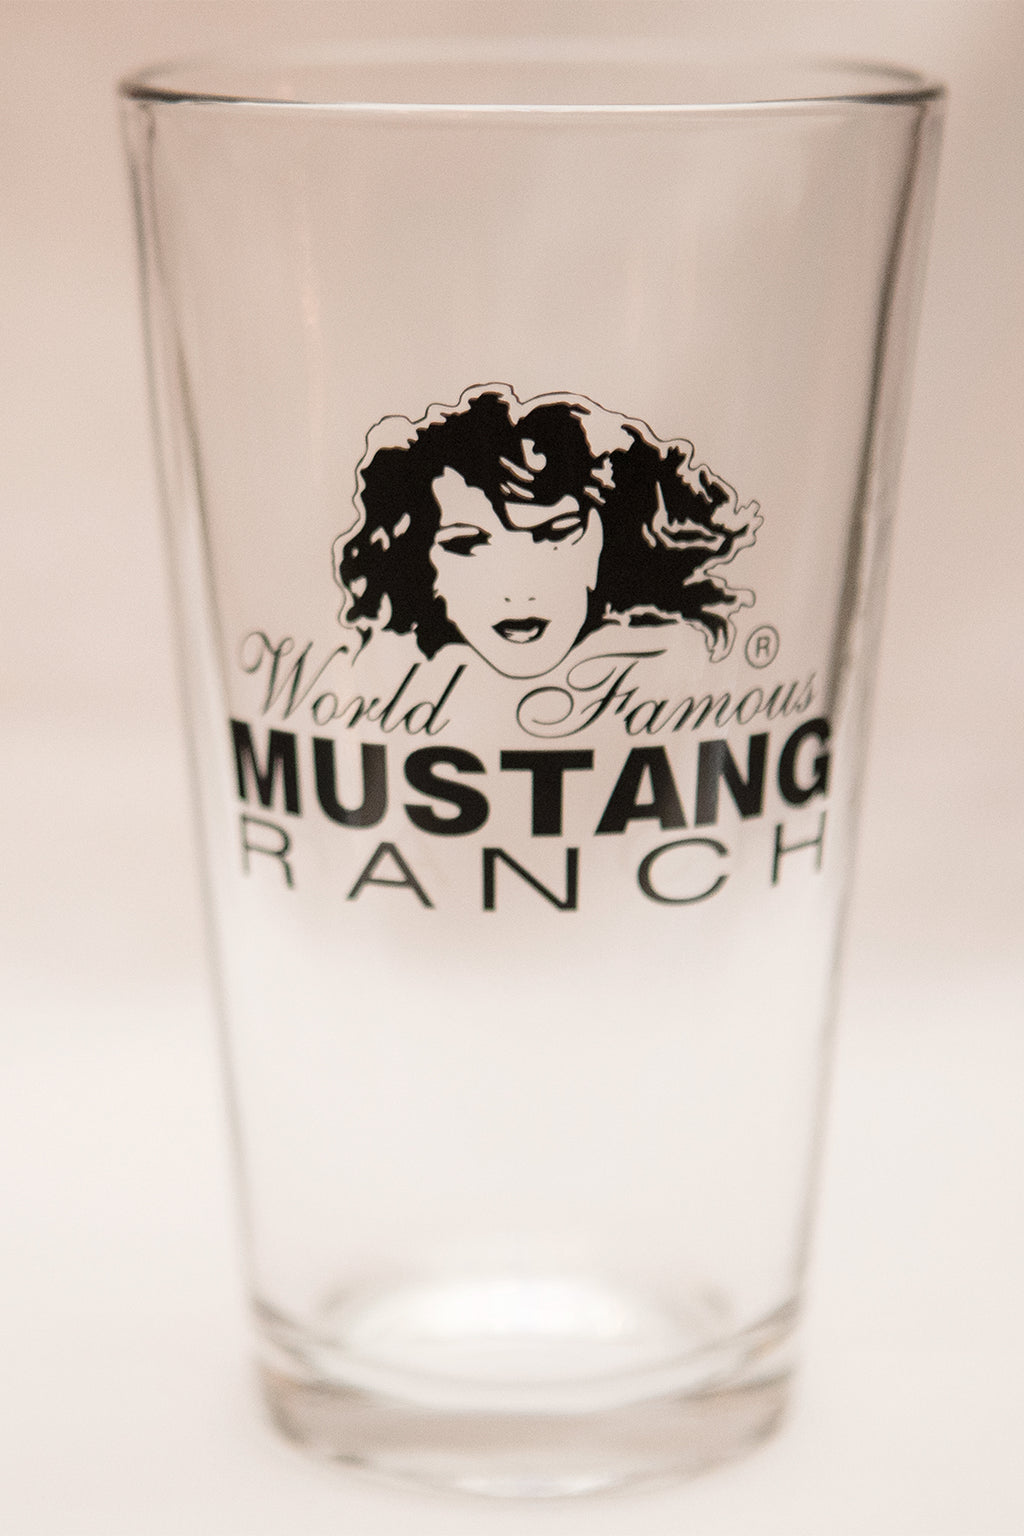 Premium Official Mustang Ranch Pint Glass - Black